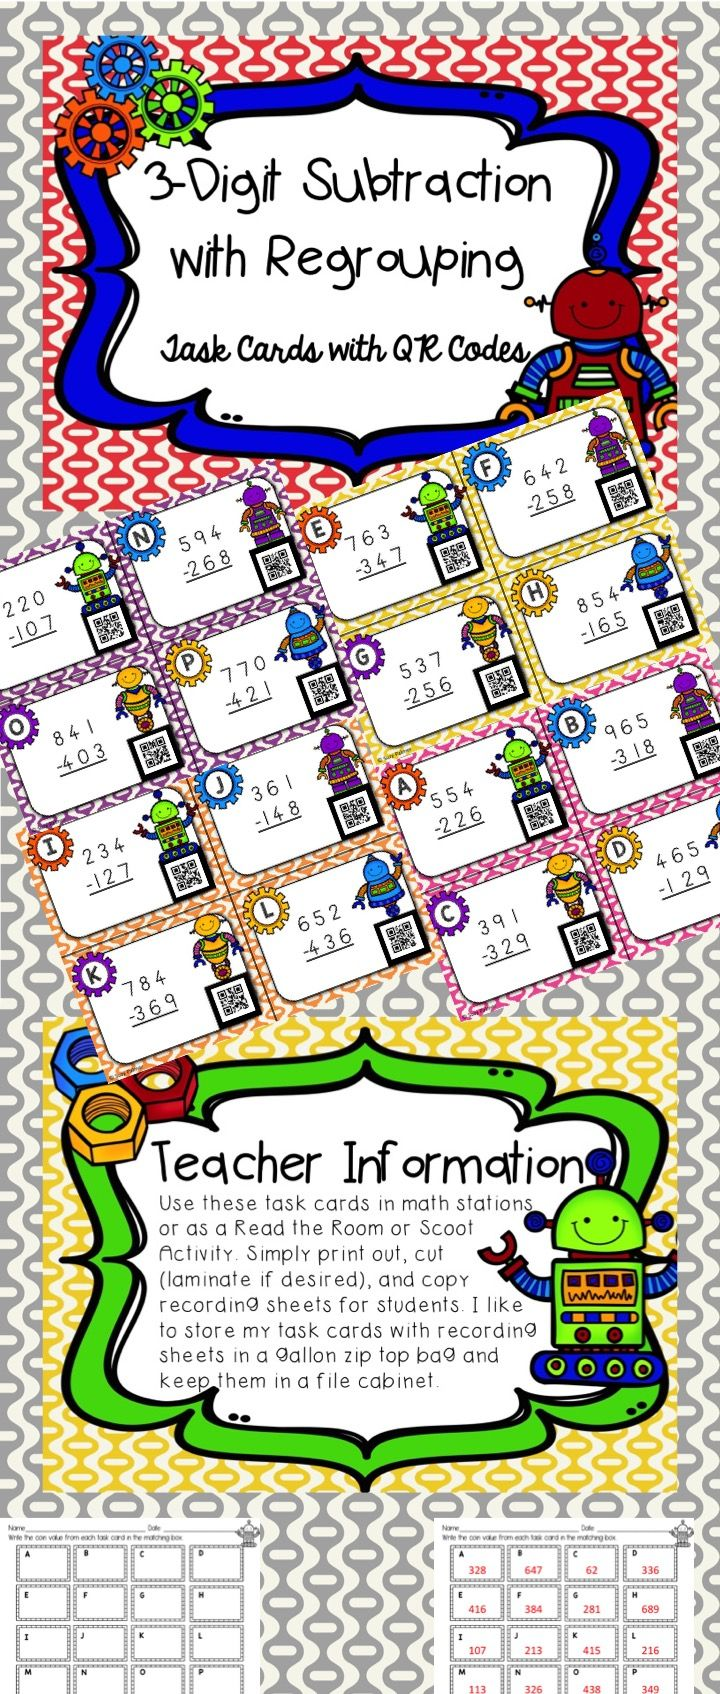 This cute robot themed subtraction activity with QR codes will motivate and excite your students. There are 16 three digit subtraction (with regrouping) task cards and a recording sheet. Each task card includes a QR code so students can check their answers. The recording sheets have room for students to write the problem and show their work. When scanned with a device equipped with a QR code reader app, the QR code will reveal the answer to each problem.